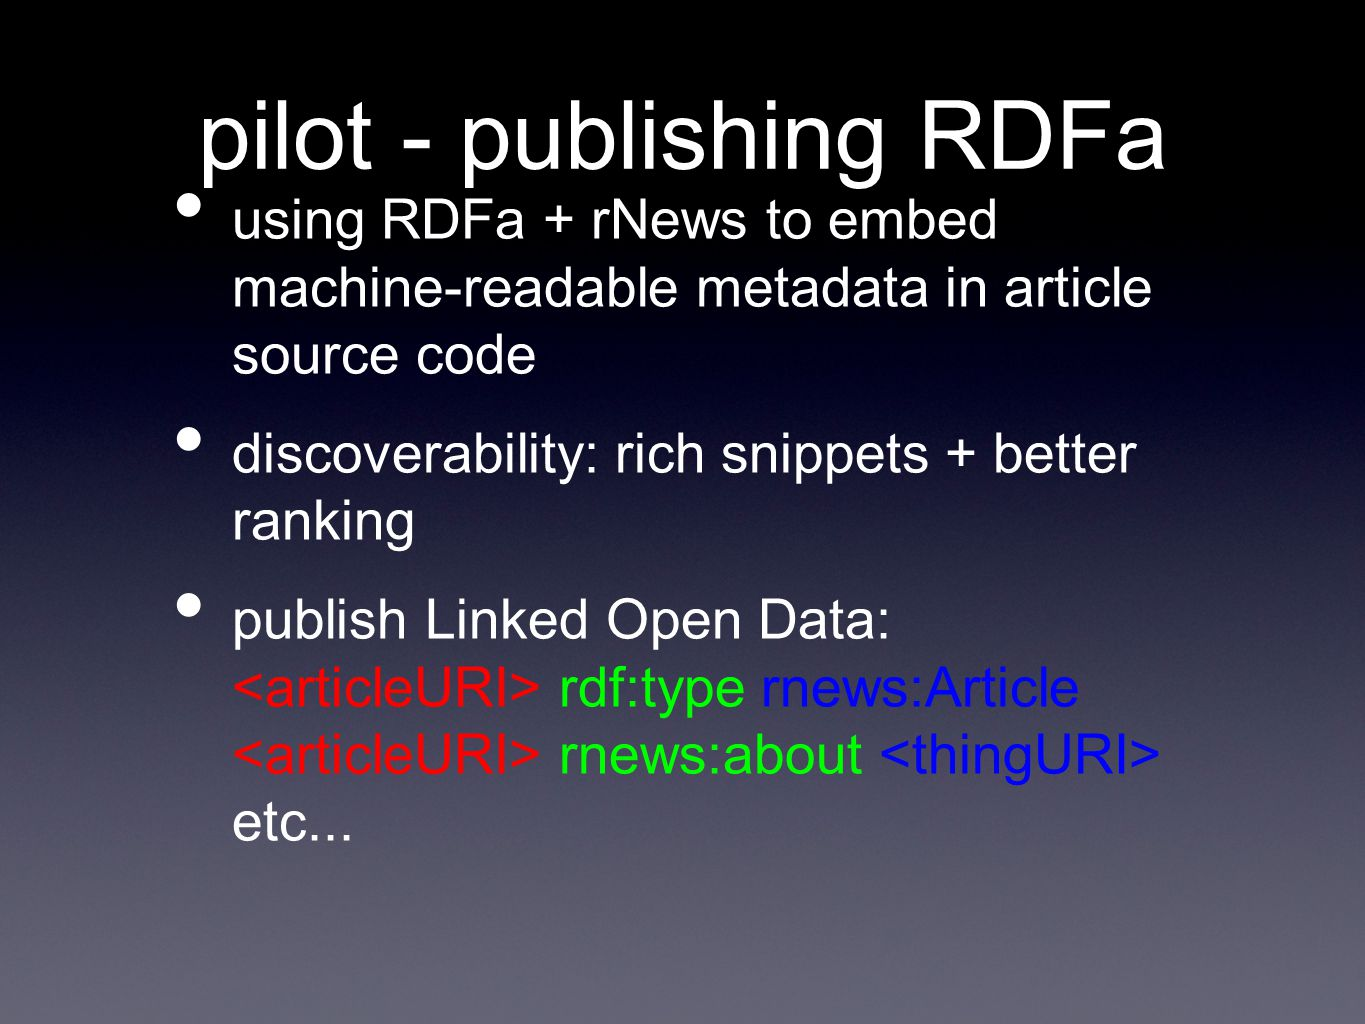 pilot - publishing RDFa using RDFa + rNews to embed machine-readable metadata in article source code discoverability: rich snippets + better ranking publish Linked Open Data: rdf:type rnews:Article rnews:about etc...